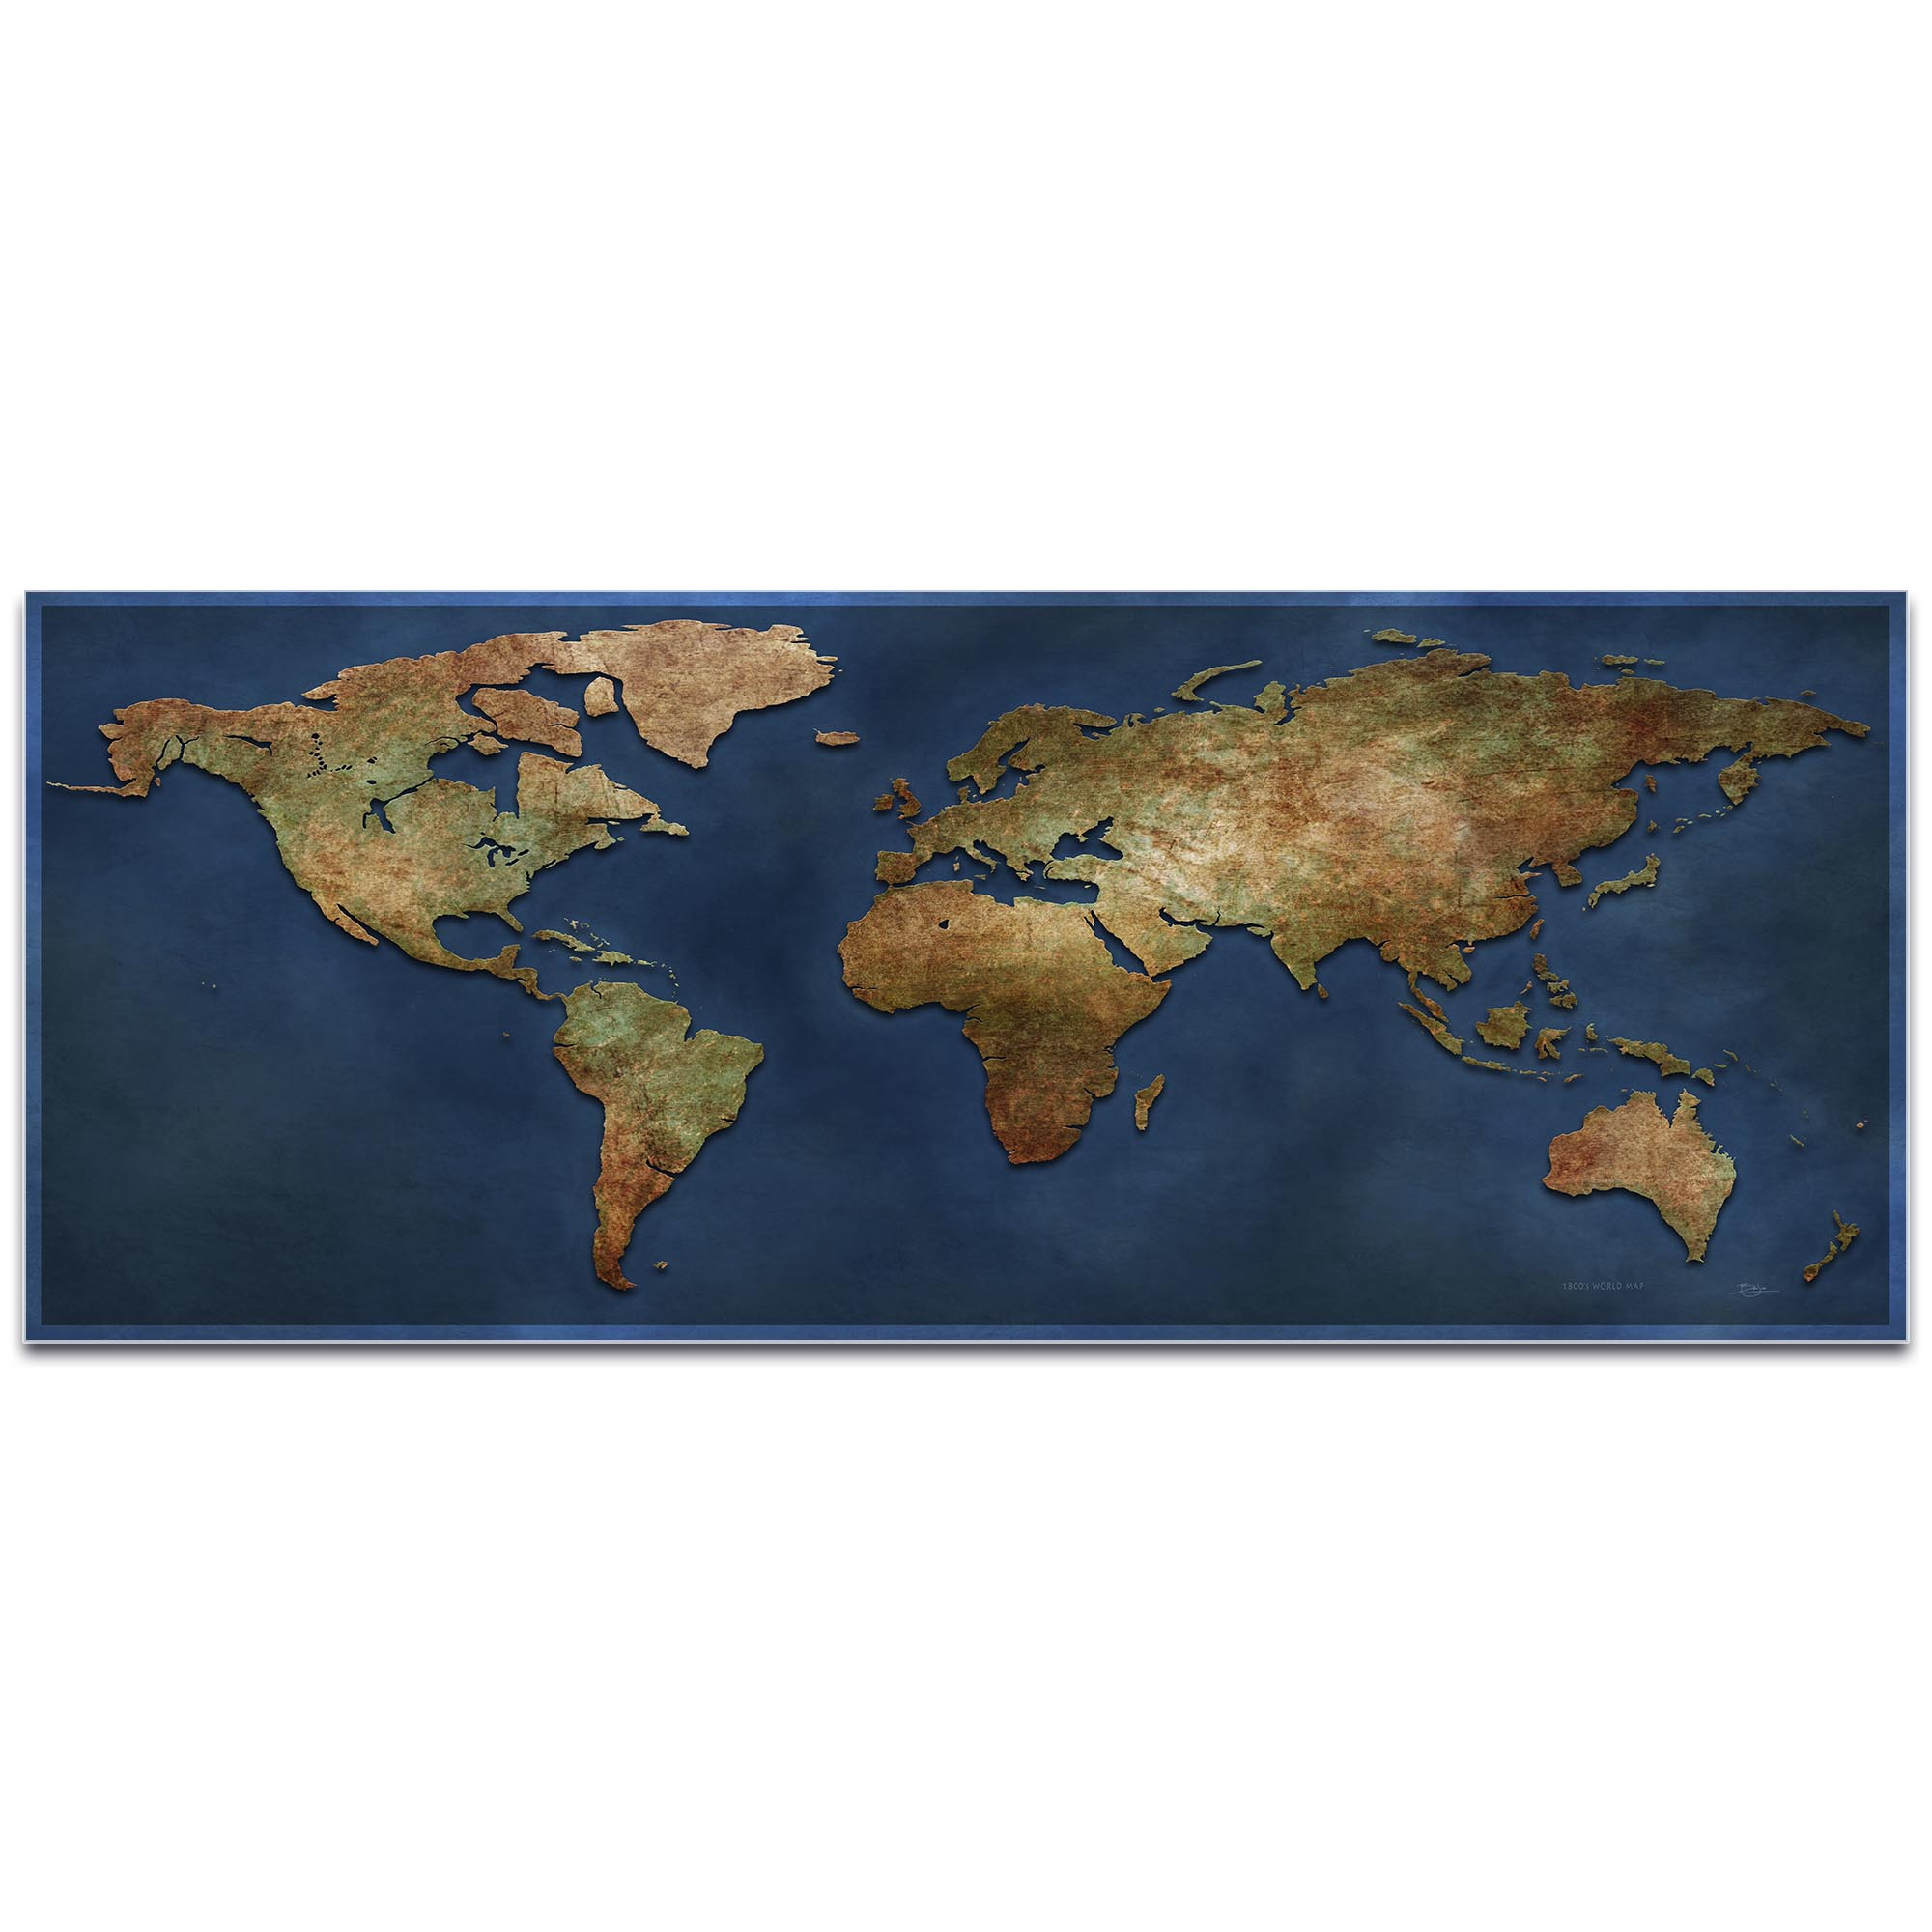 World Map Art '1800s World Map' - Old World Wall Decor on Metal or Acrylic - Image 2